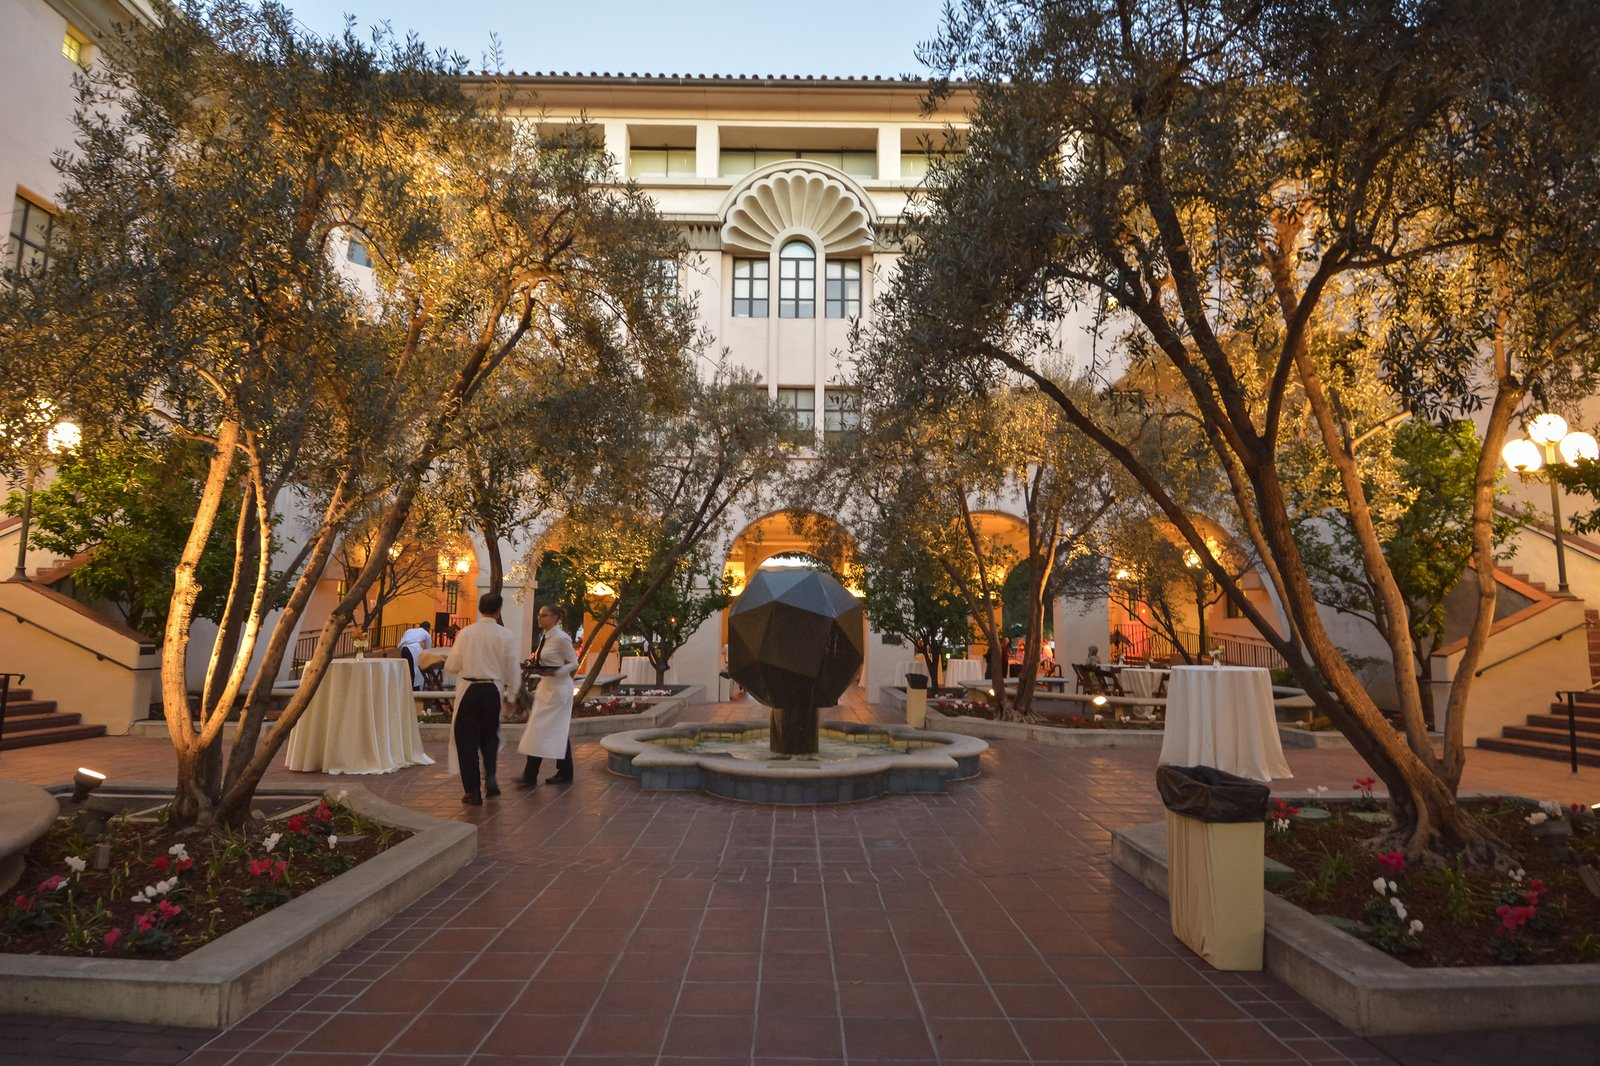 Beckman breezeway in the  evening